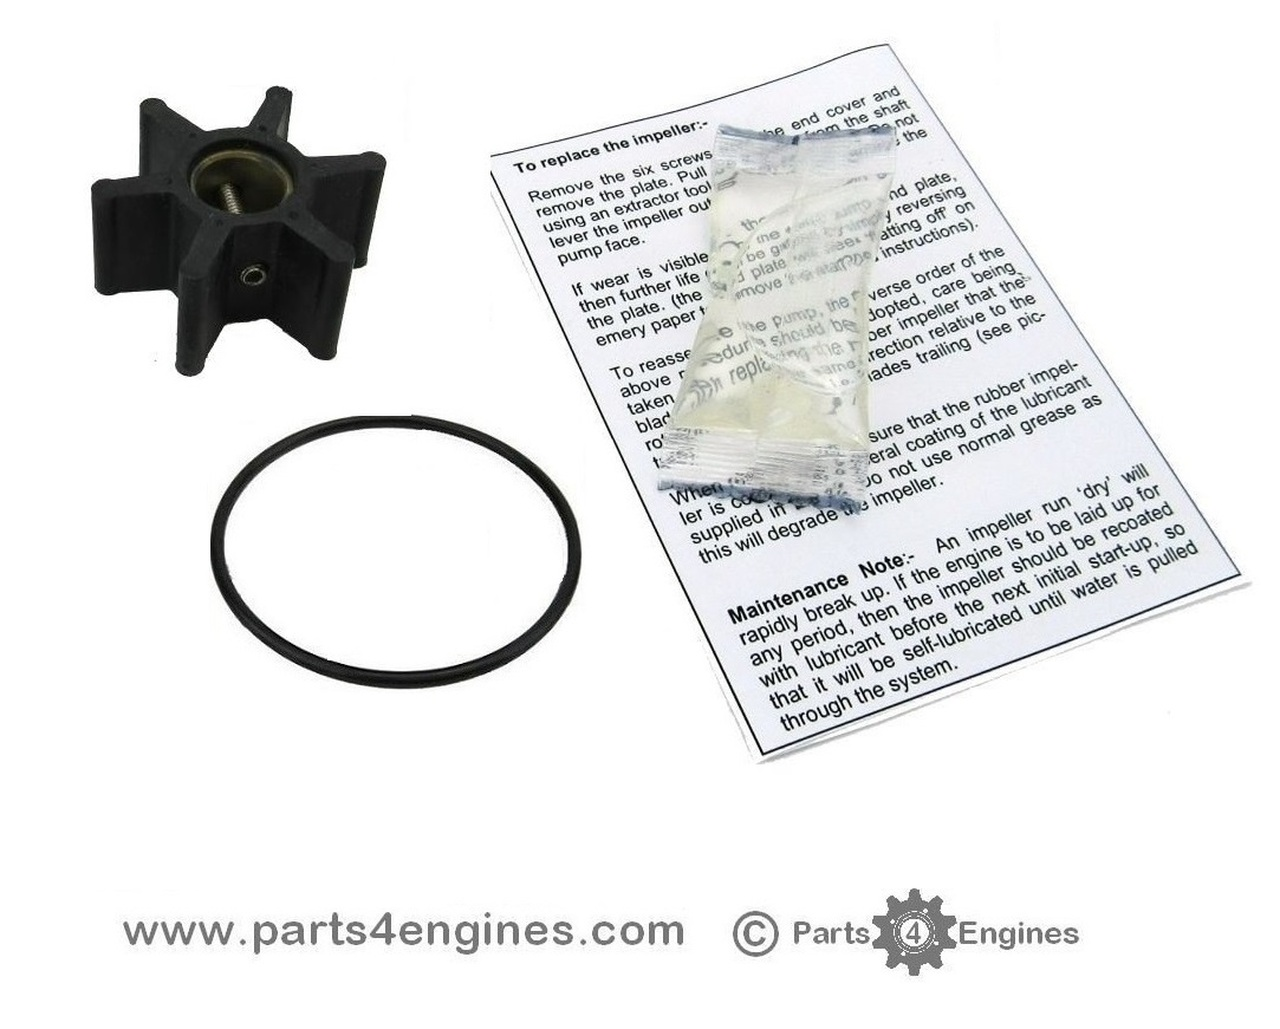 Yanmar 2YM15 Raw water pump impeller kit - parts4engines.com